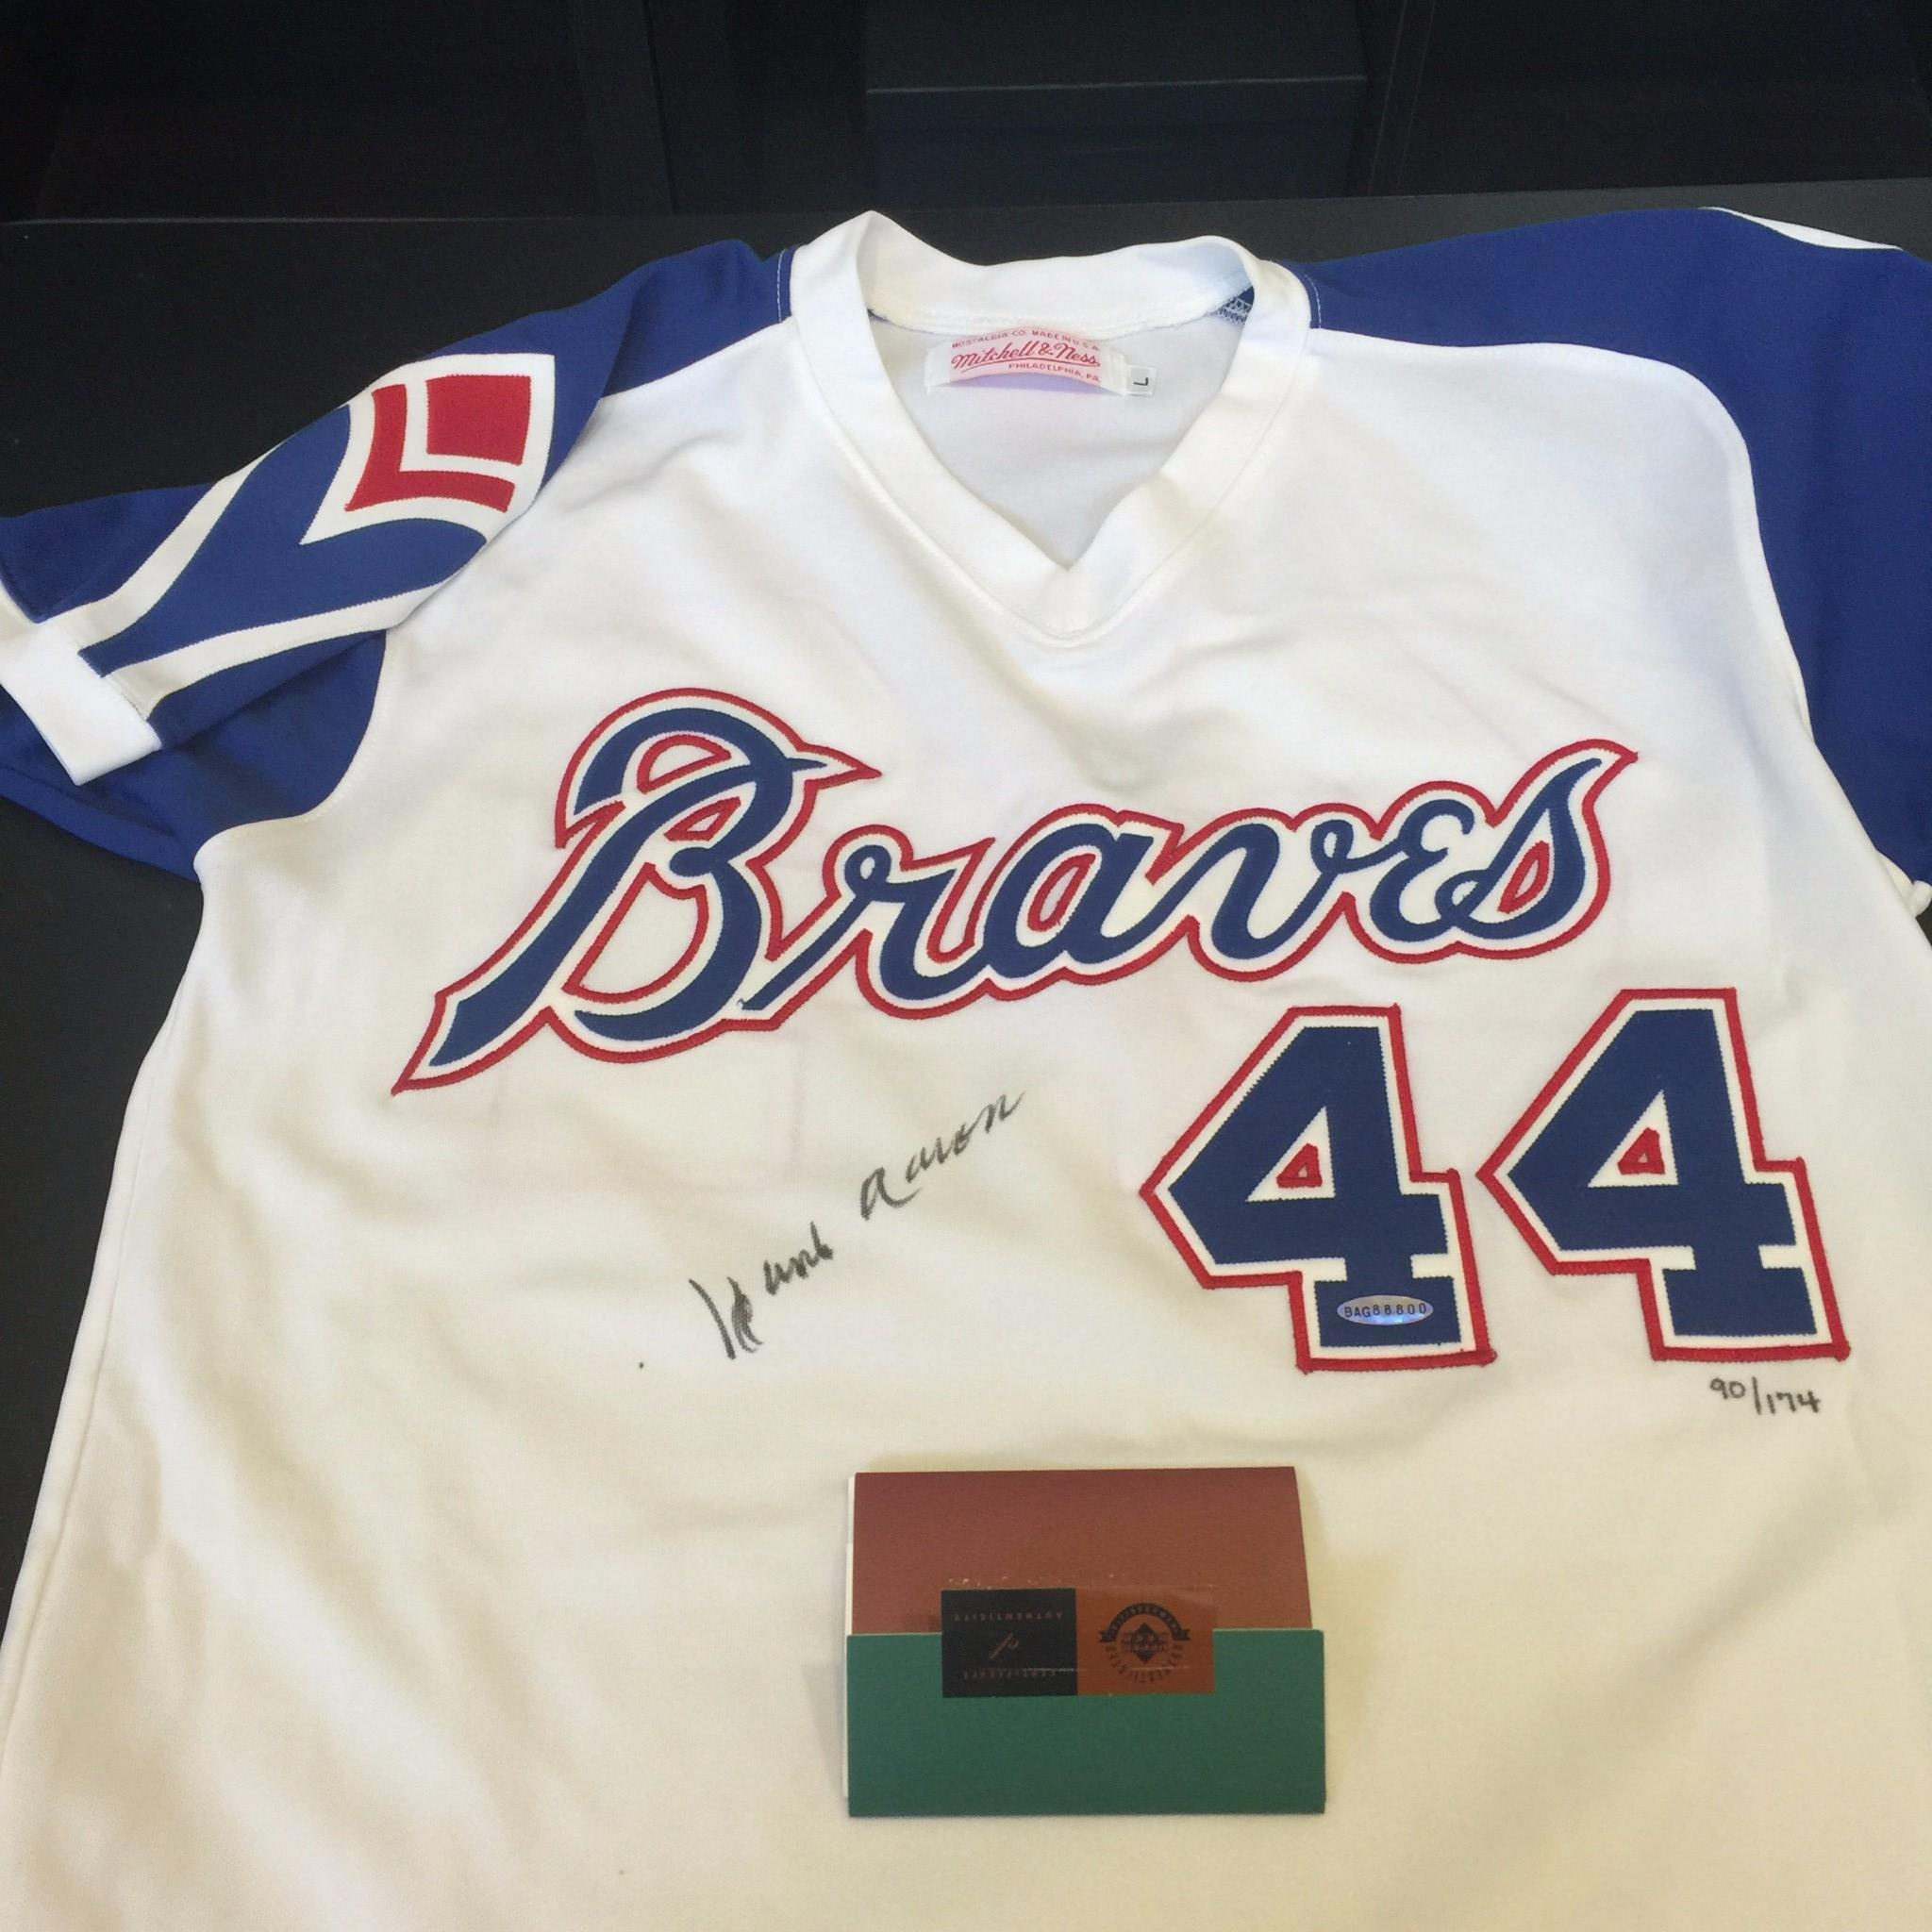 separation shoes 9587c 41749 Details about Rare Hank Aaron Signed Authentic 1974 Atlanta Braves Jersey  Upper Deck UDA COA